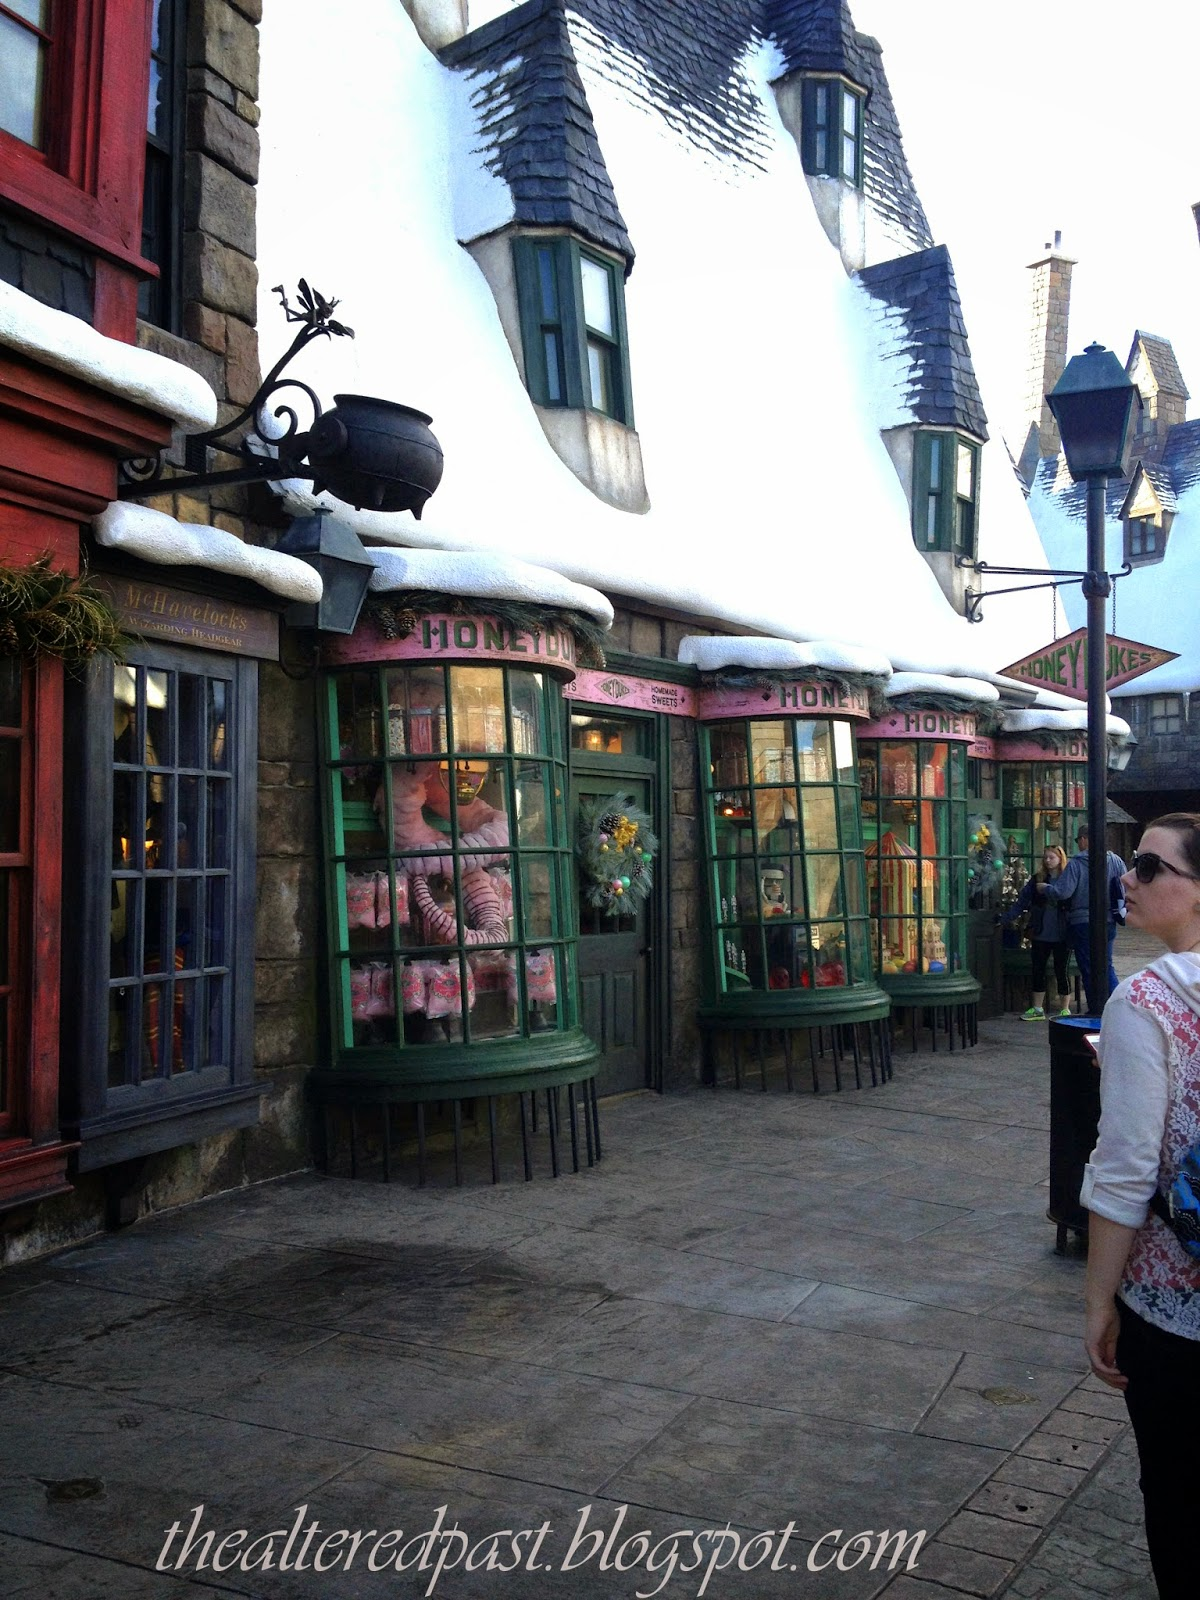 Christmas at The Wizarding World of Harry Potter, Universal Studios, the altered past